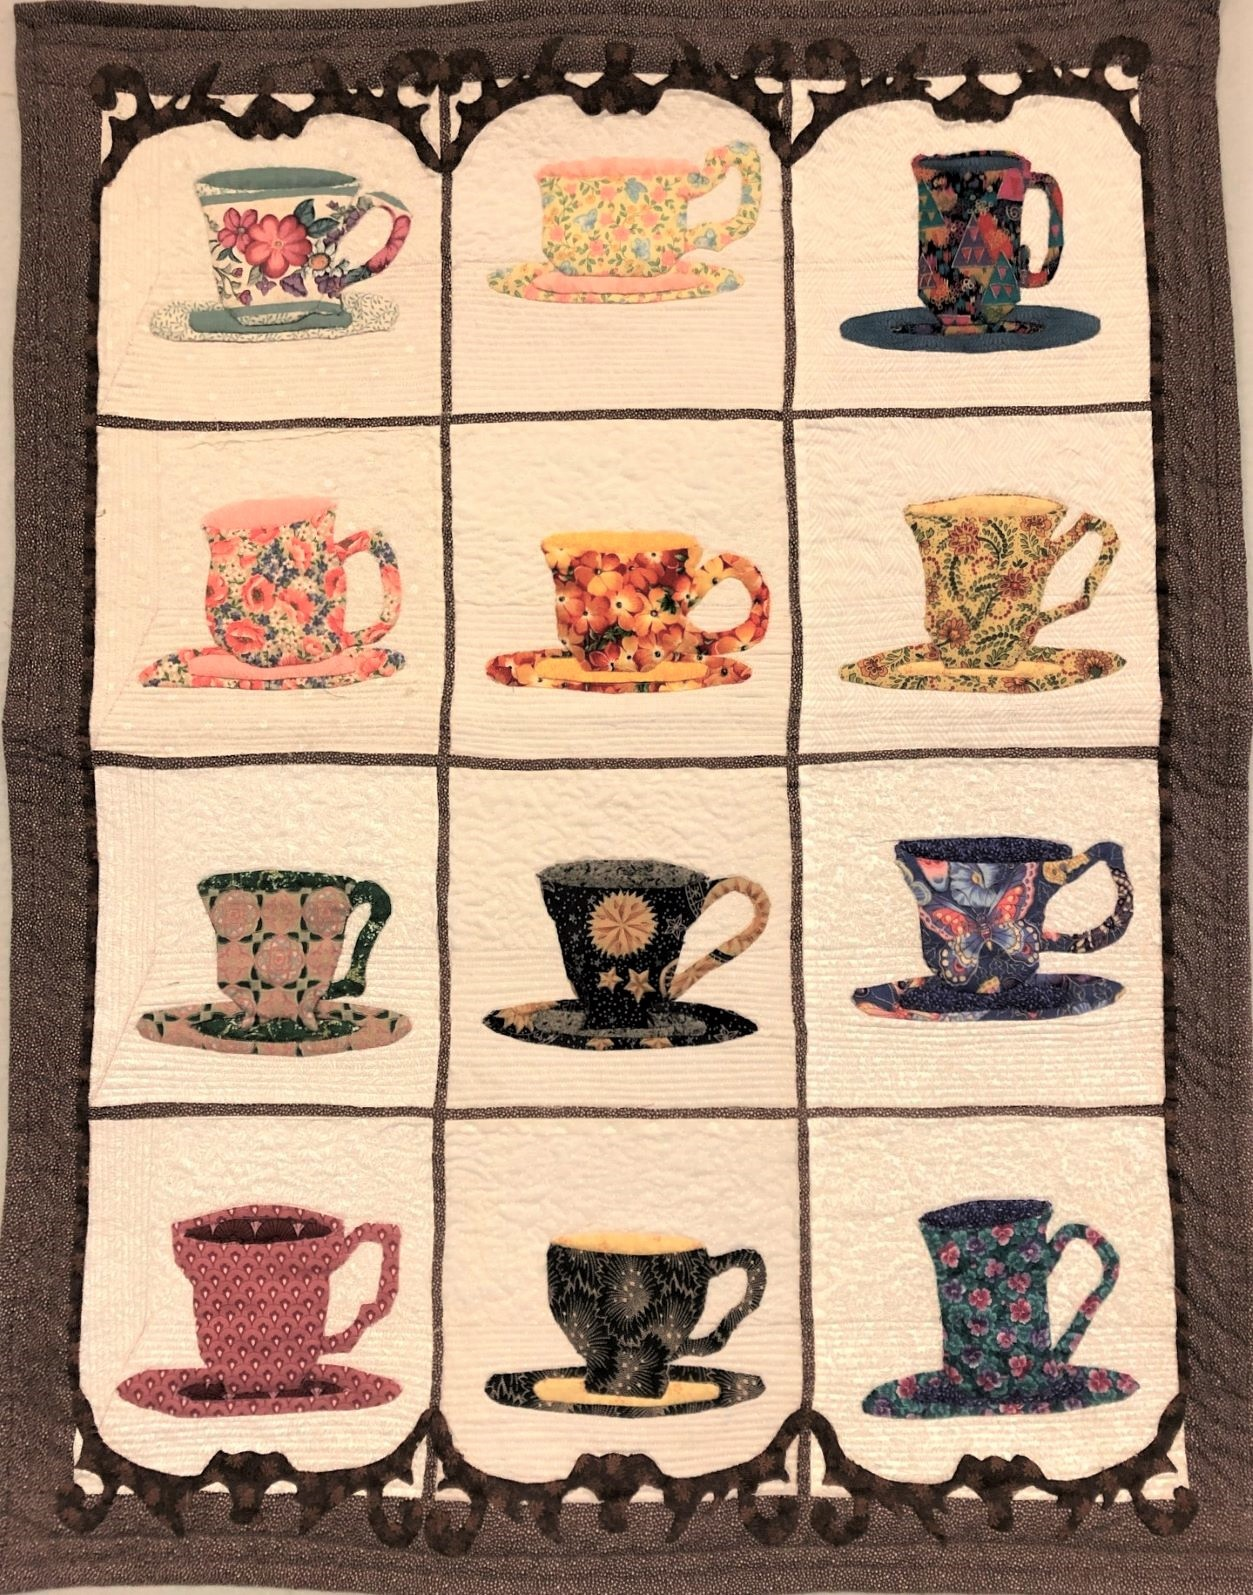 A quilt with floral teacups.